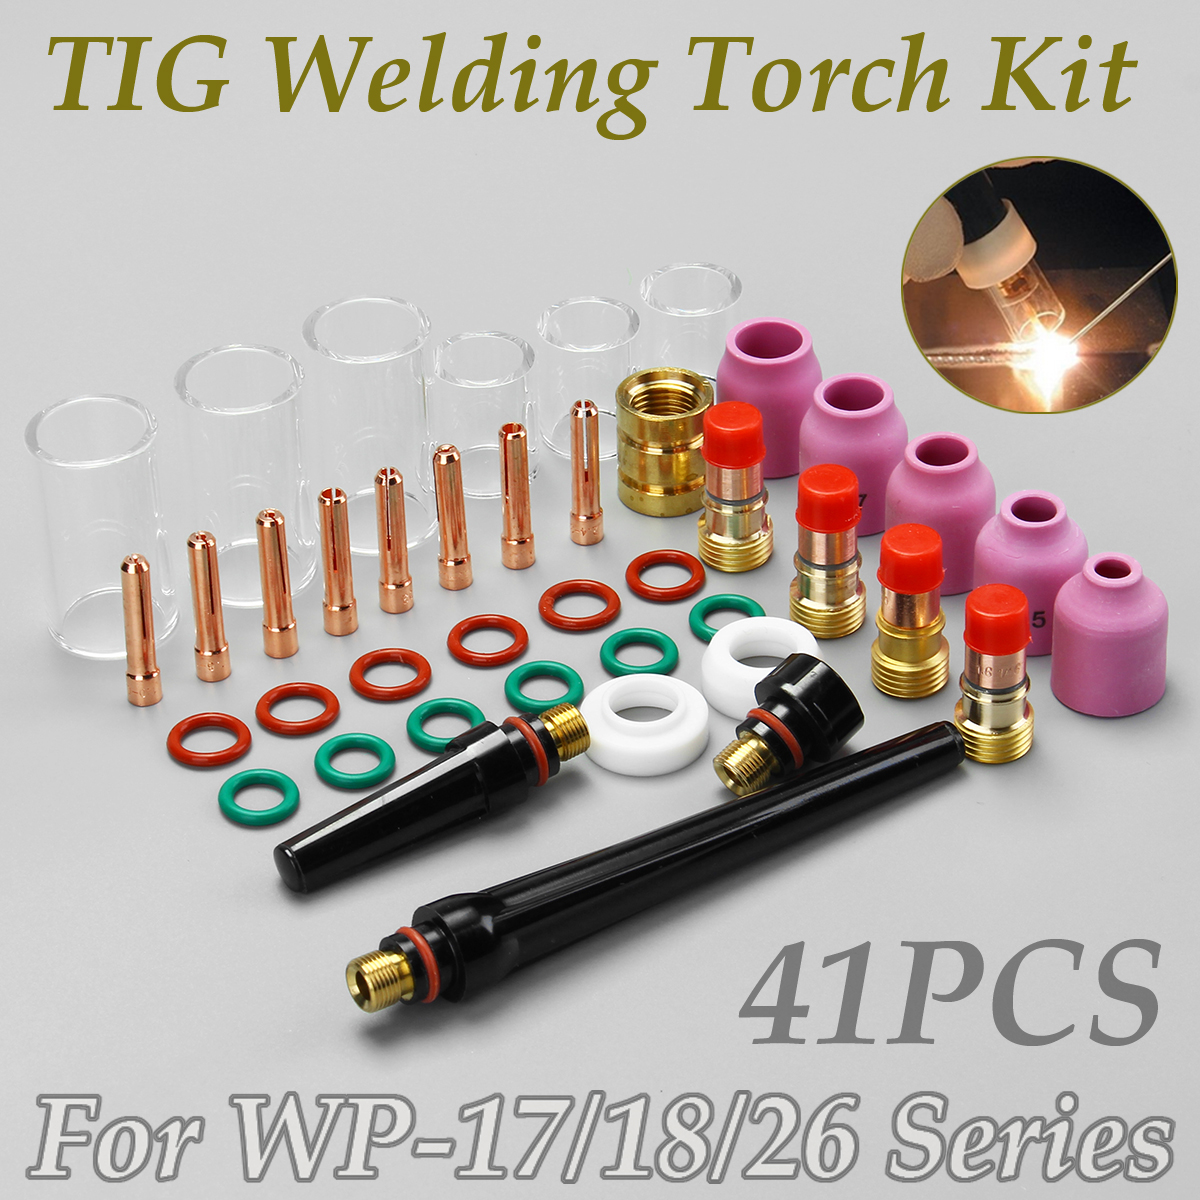 New 41PCS TIG Welding Torch Stubby Gas Lens Glass Pyrex Cup Kit for WP-17/18/26 Series 1mm 1.6mm 2.4mm 3.2mm Needle Clip 17pcs tig welding torch stubby collet gas lens glass nozzle pryex cup kit with heat resistant o rings for wp 17 18 26 series